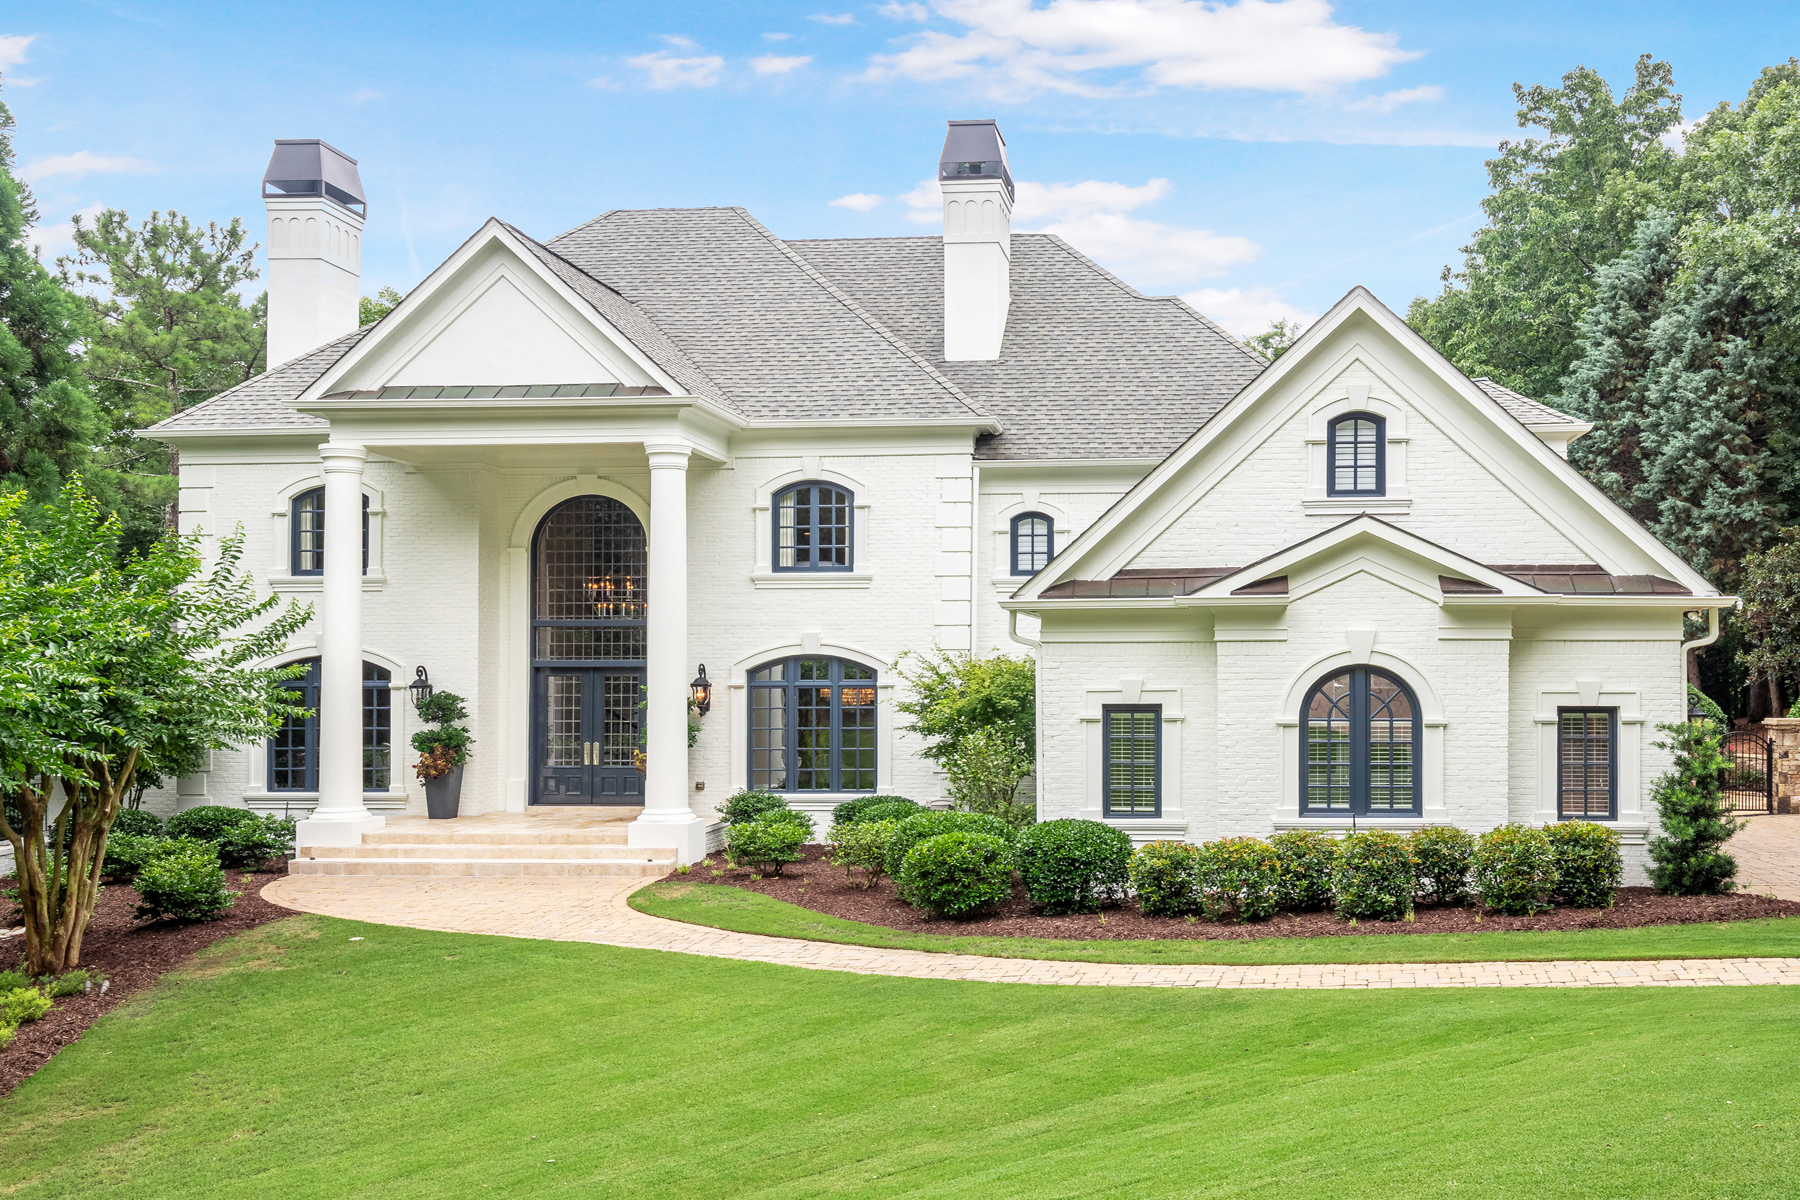 Single Family Homes for Sale at Exceptional Better Than New Country Club Of The South Estate 8957 Old Southwick Pass Johns Creek, Georgia 30022 United States